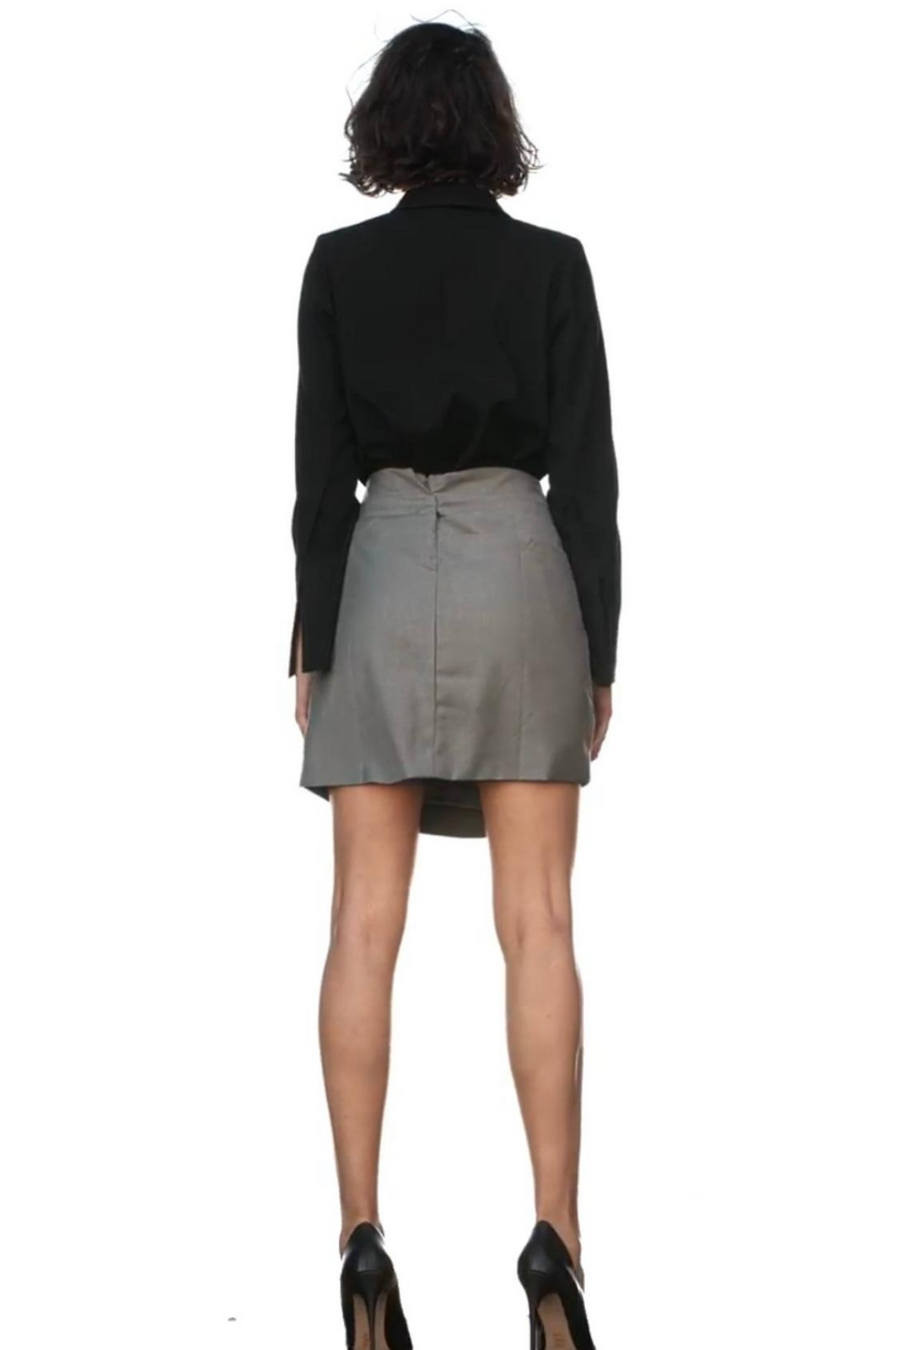 AOTC Lori Tied Mini Skirt